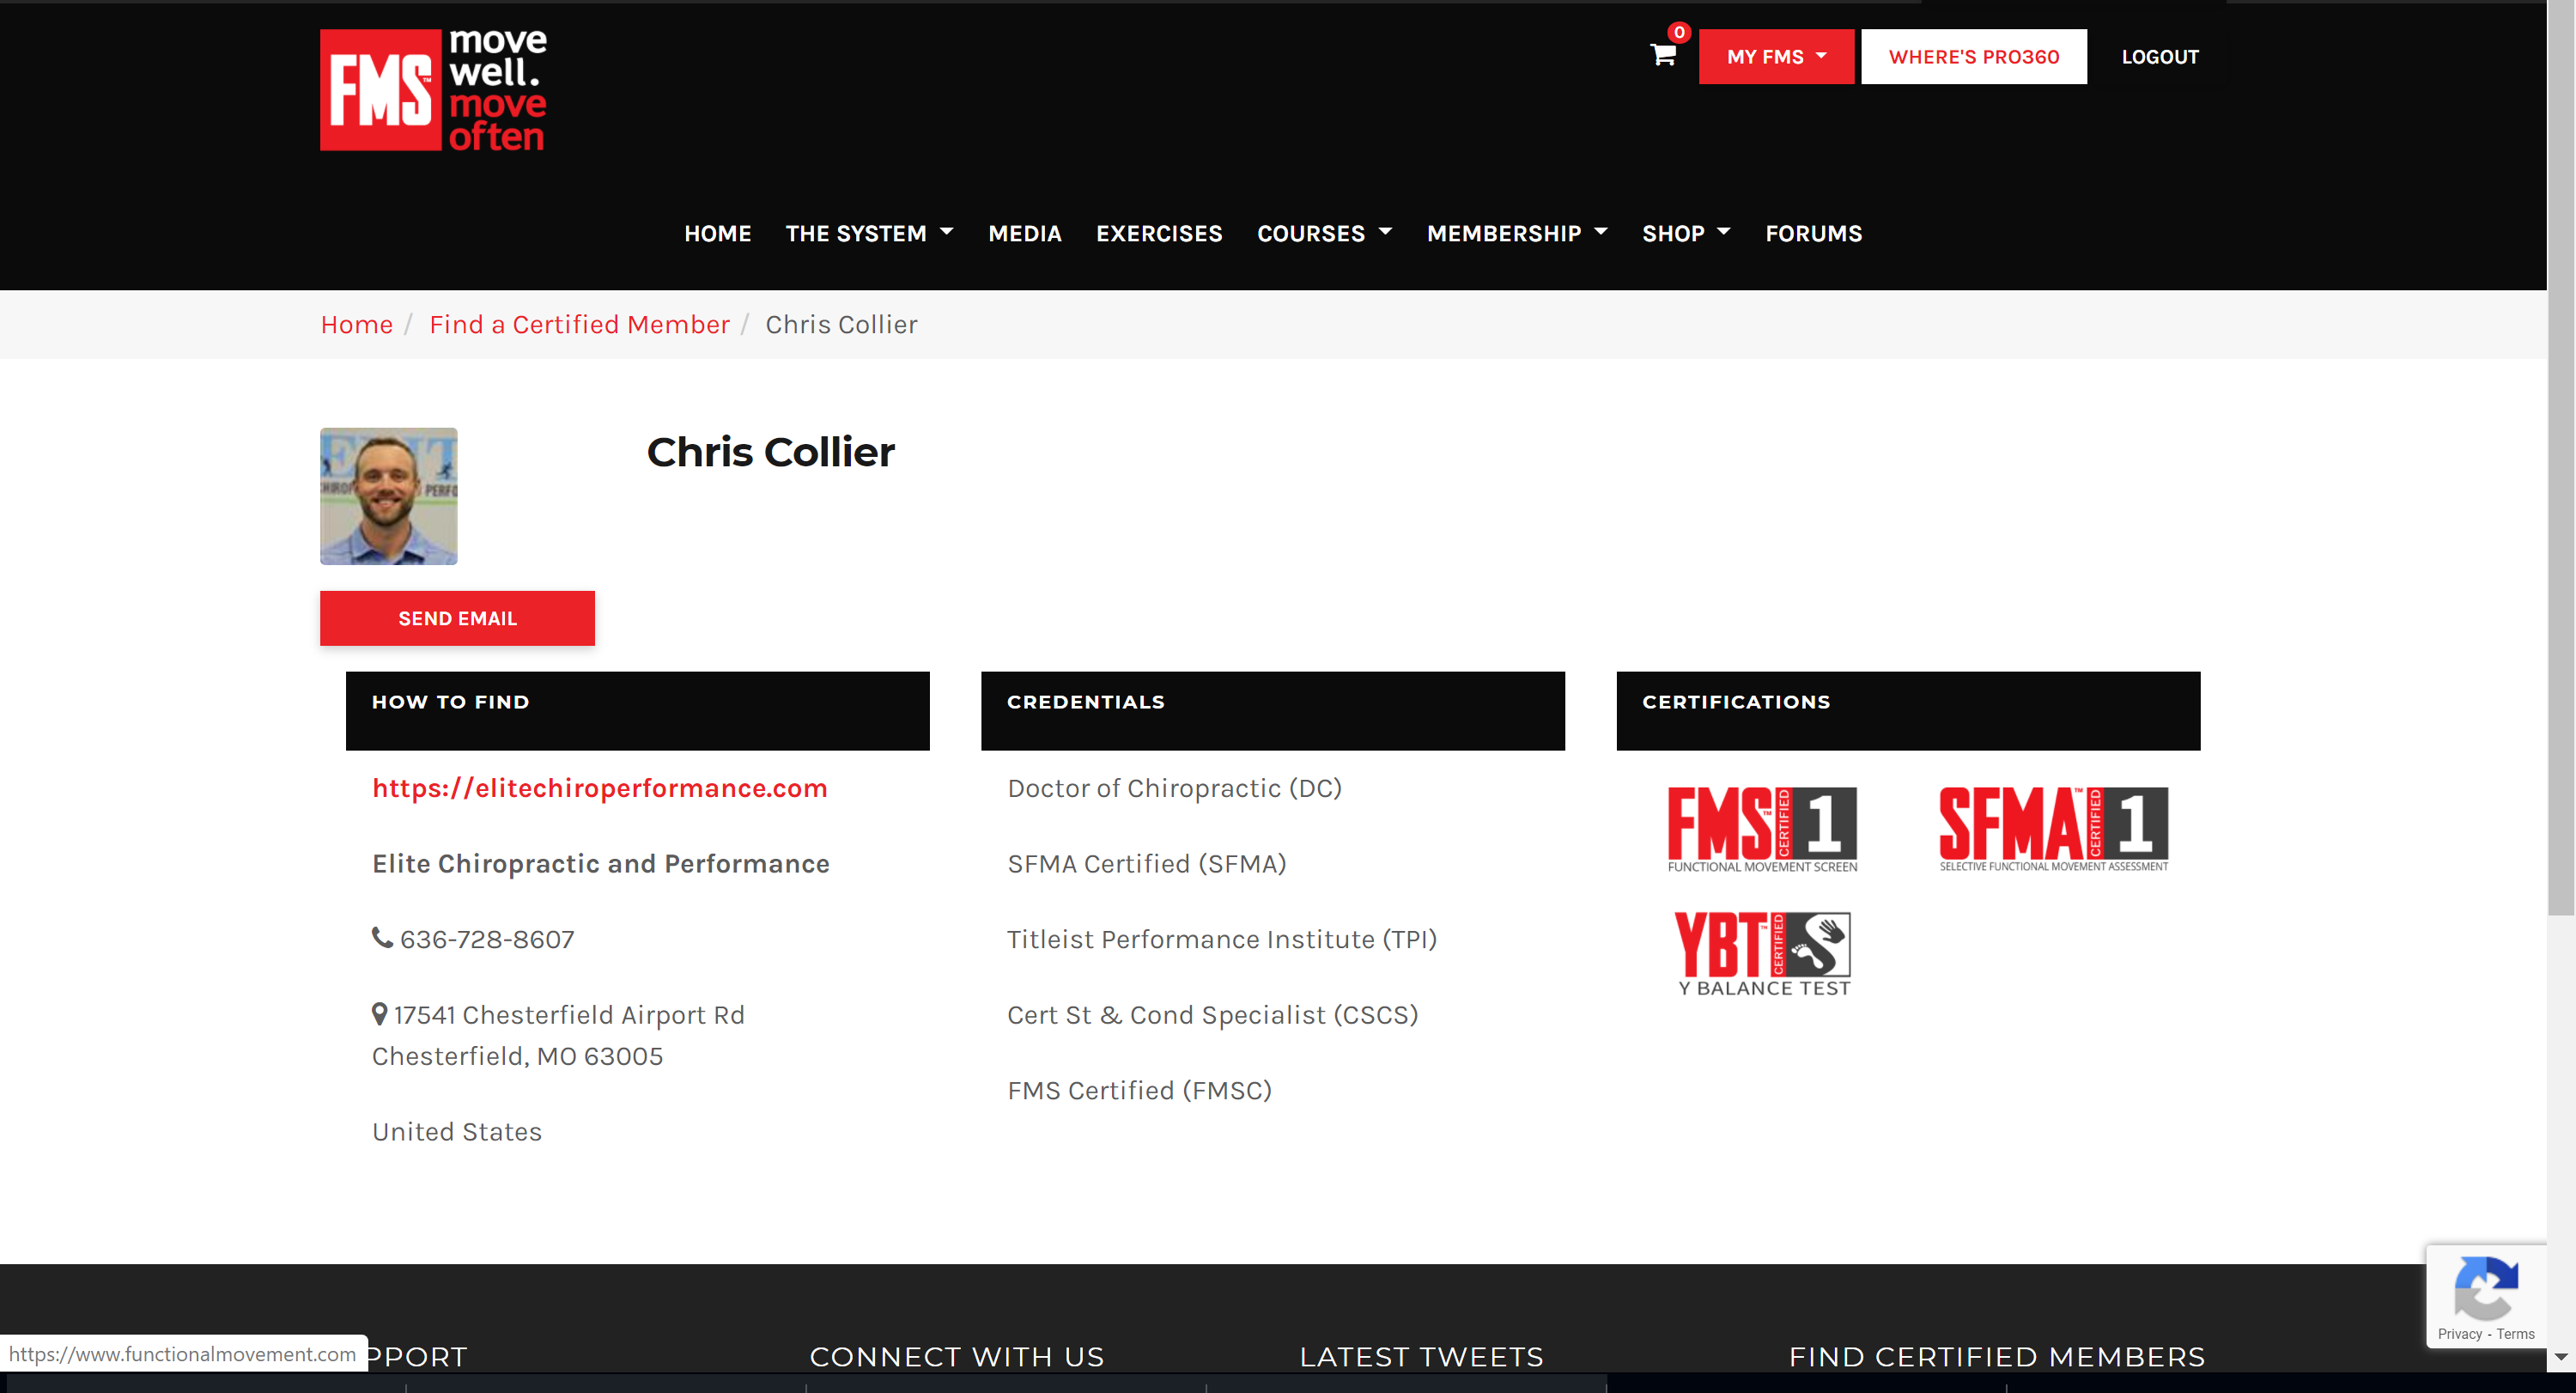 Snapshot of Dr. Chris Collier's FMS profile